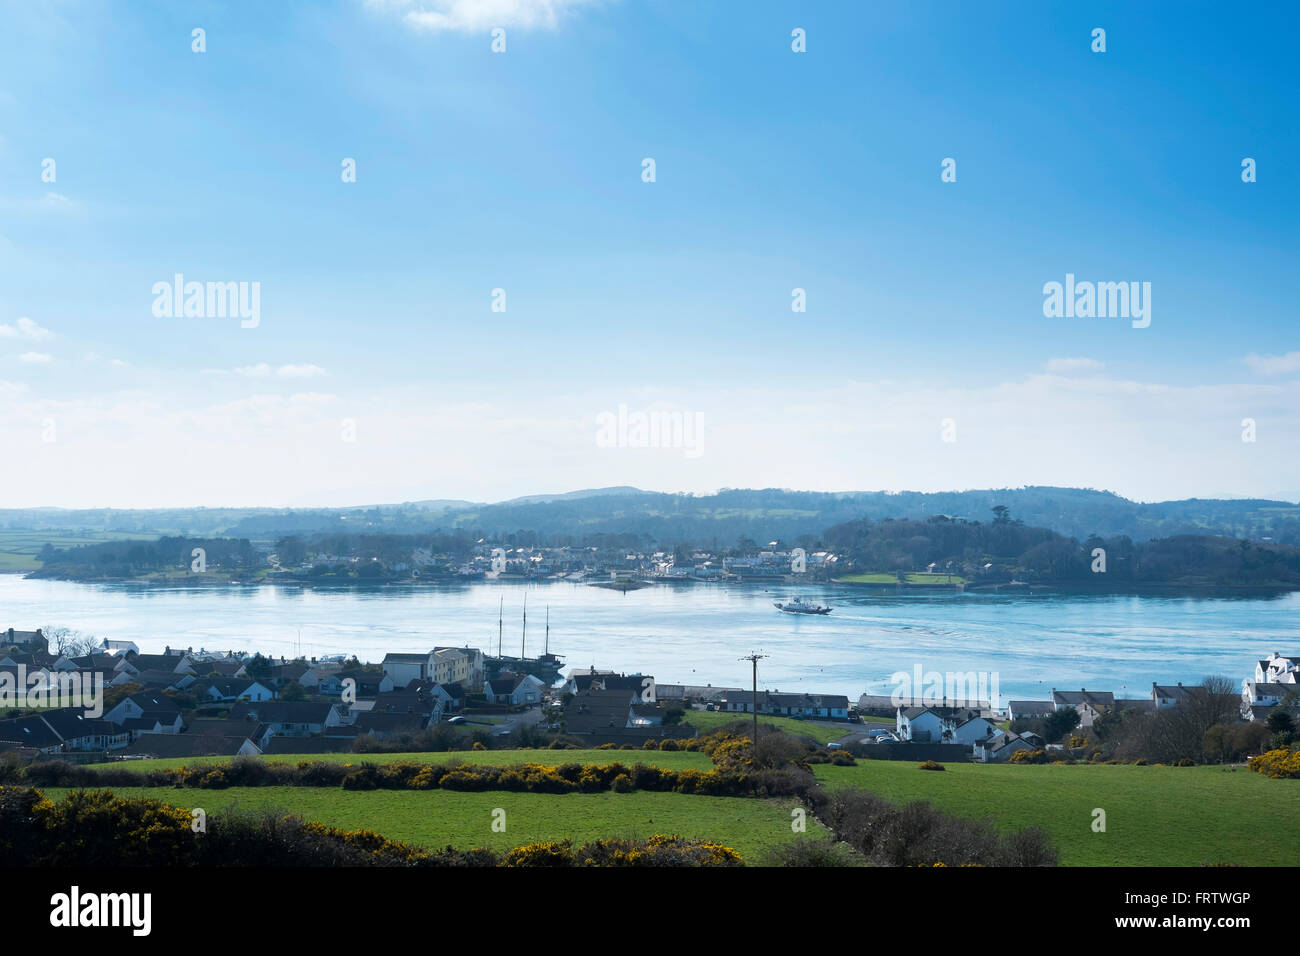 Strangford Lough, Co. Down, Northern Ireland - Stock Image